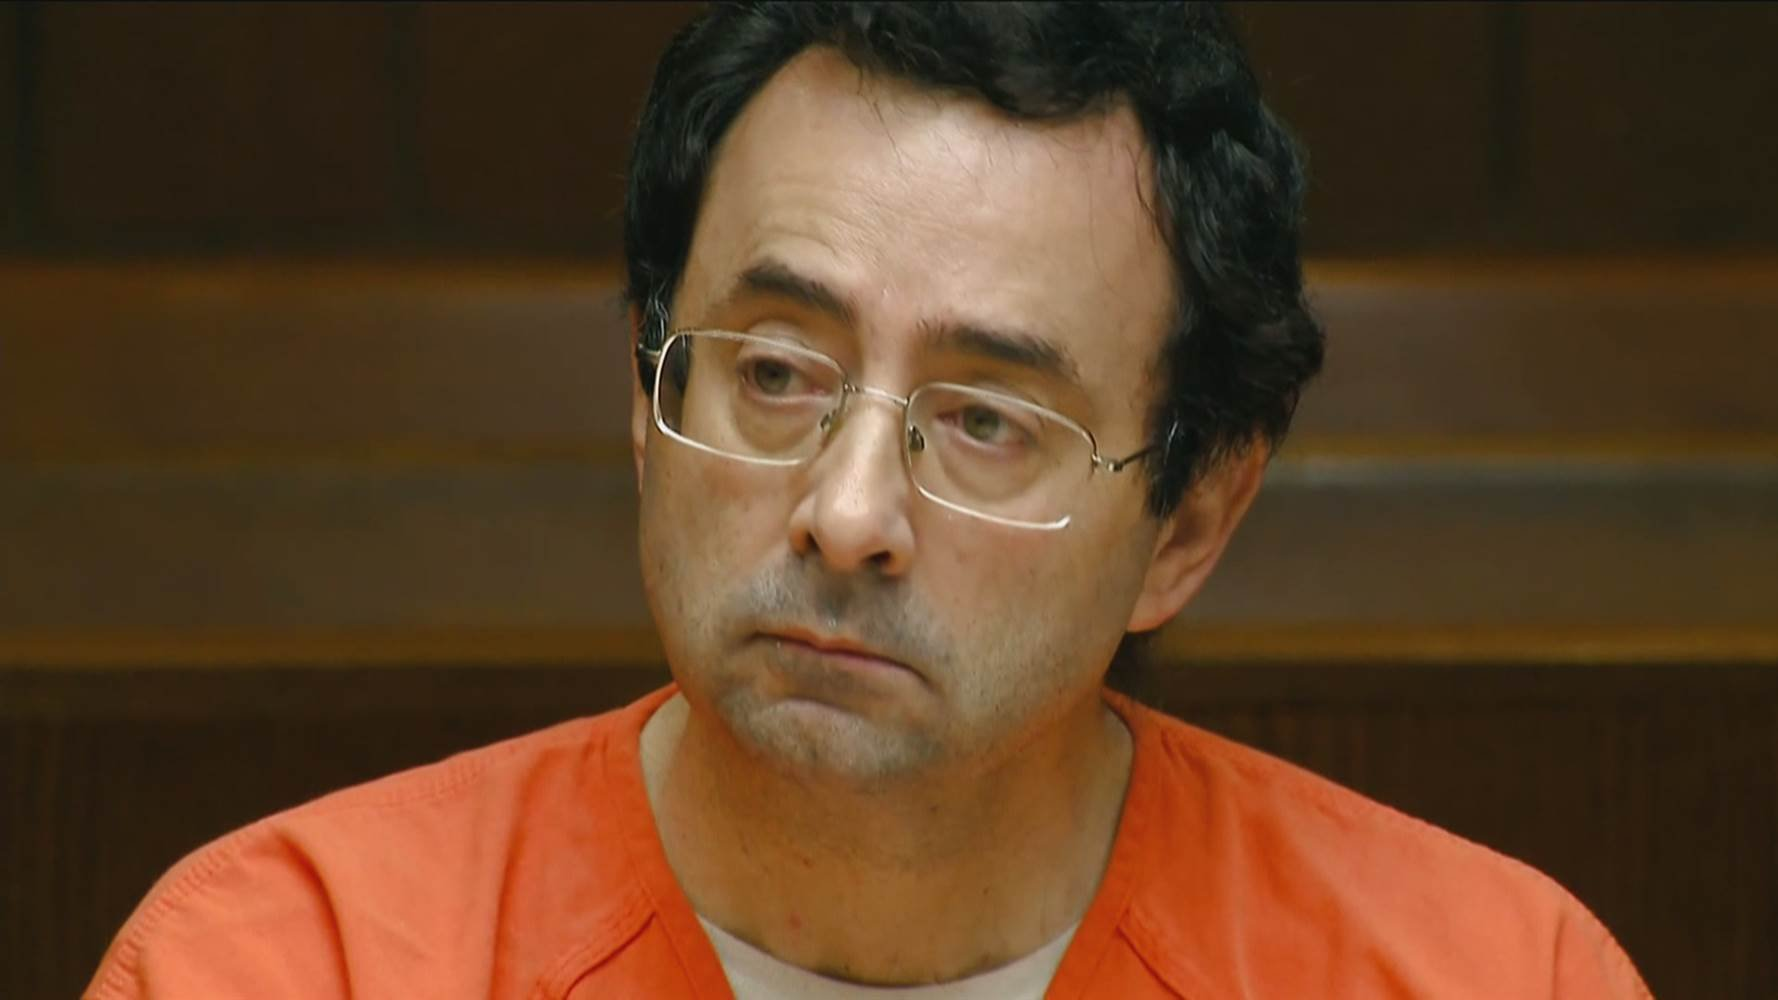 Disgraced former gymnastics doctor sent to Arizona prison